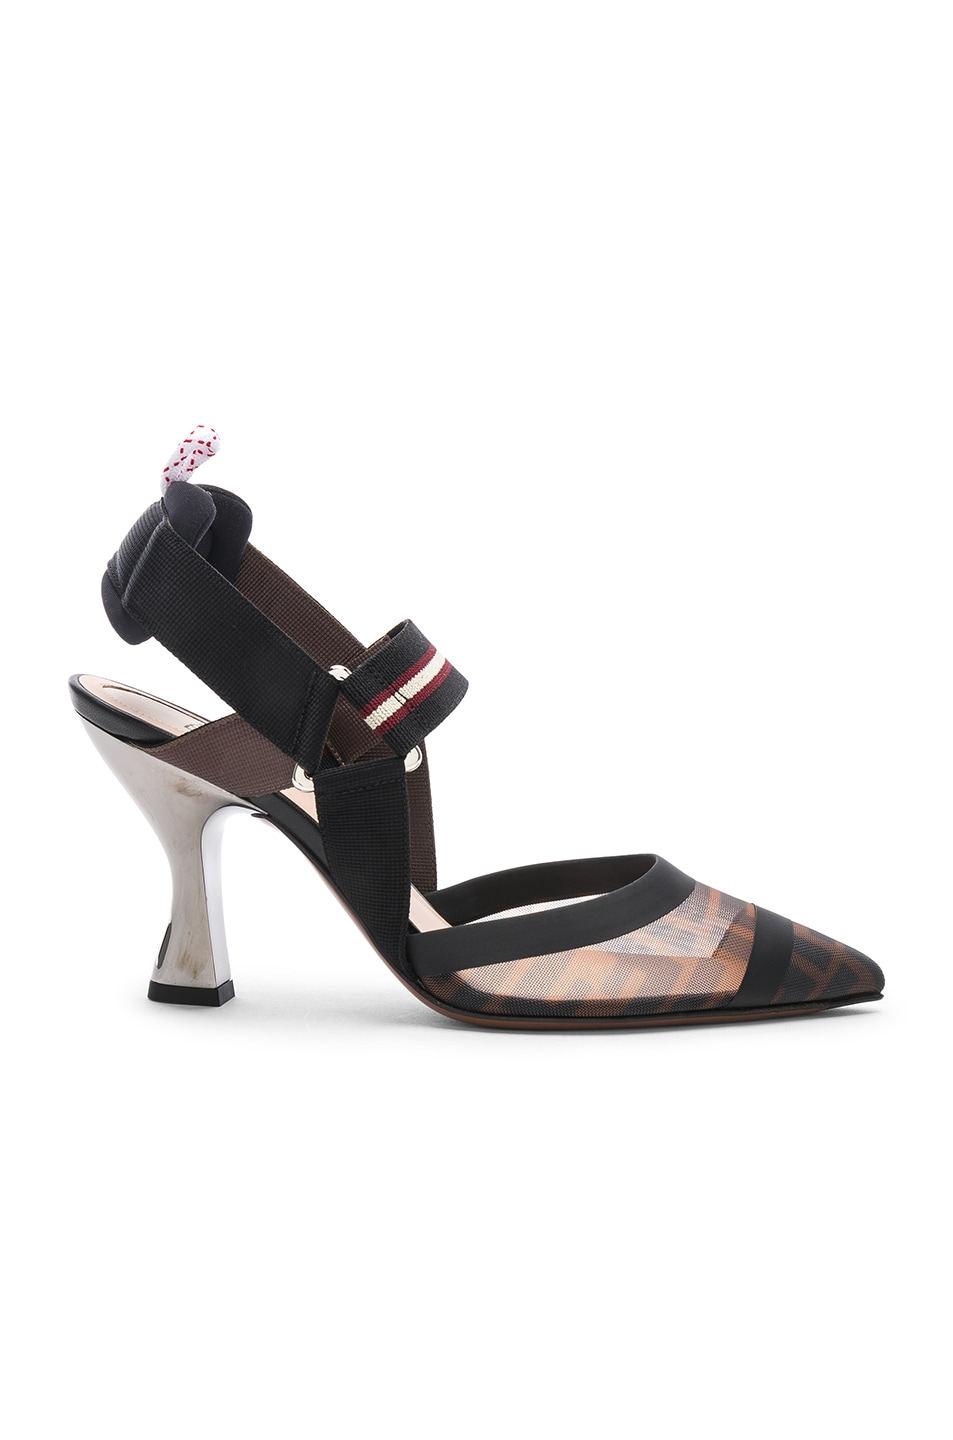 Image 1 of Fendi Colibri Slingback Heels in Black